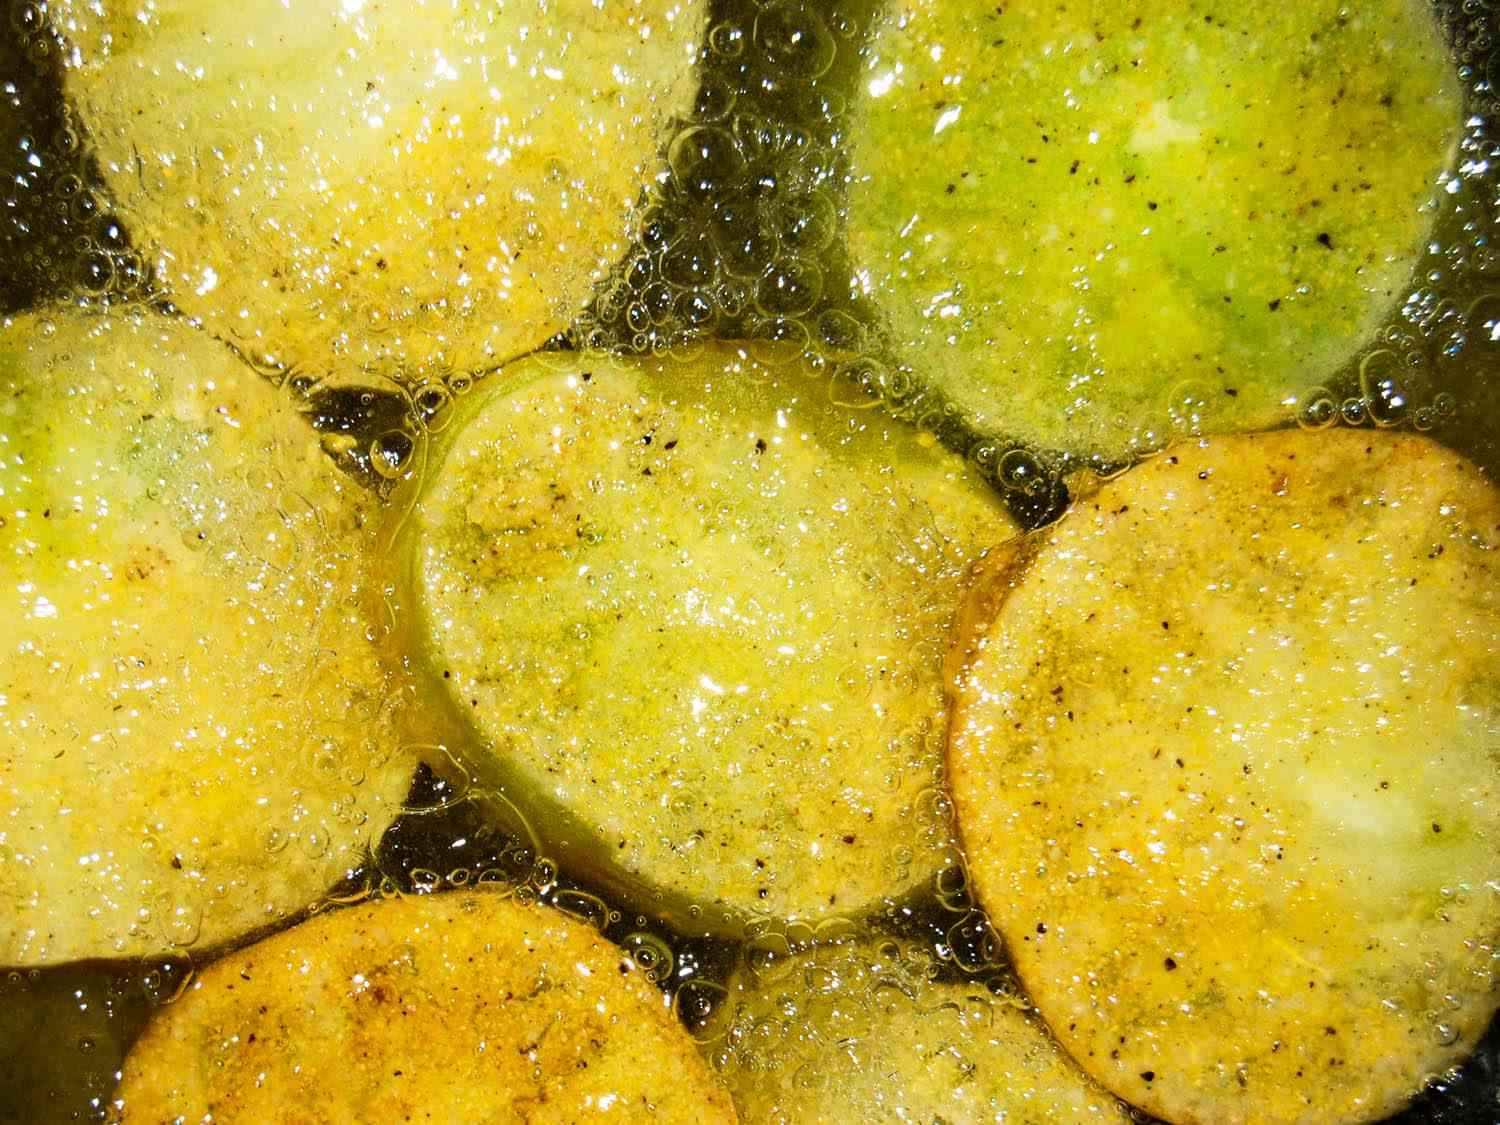 20141020-fried-green-tomatoes-flickr-1-eric-allix-rogers.jpg